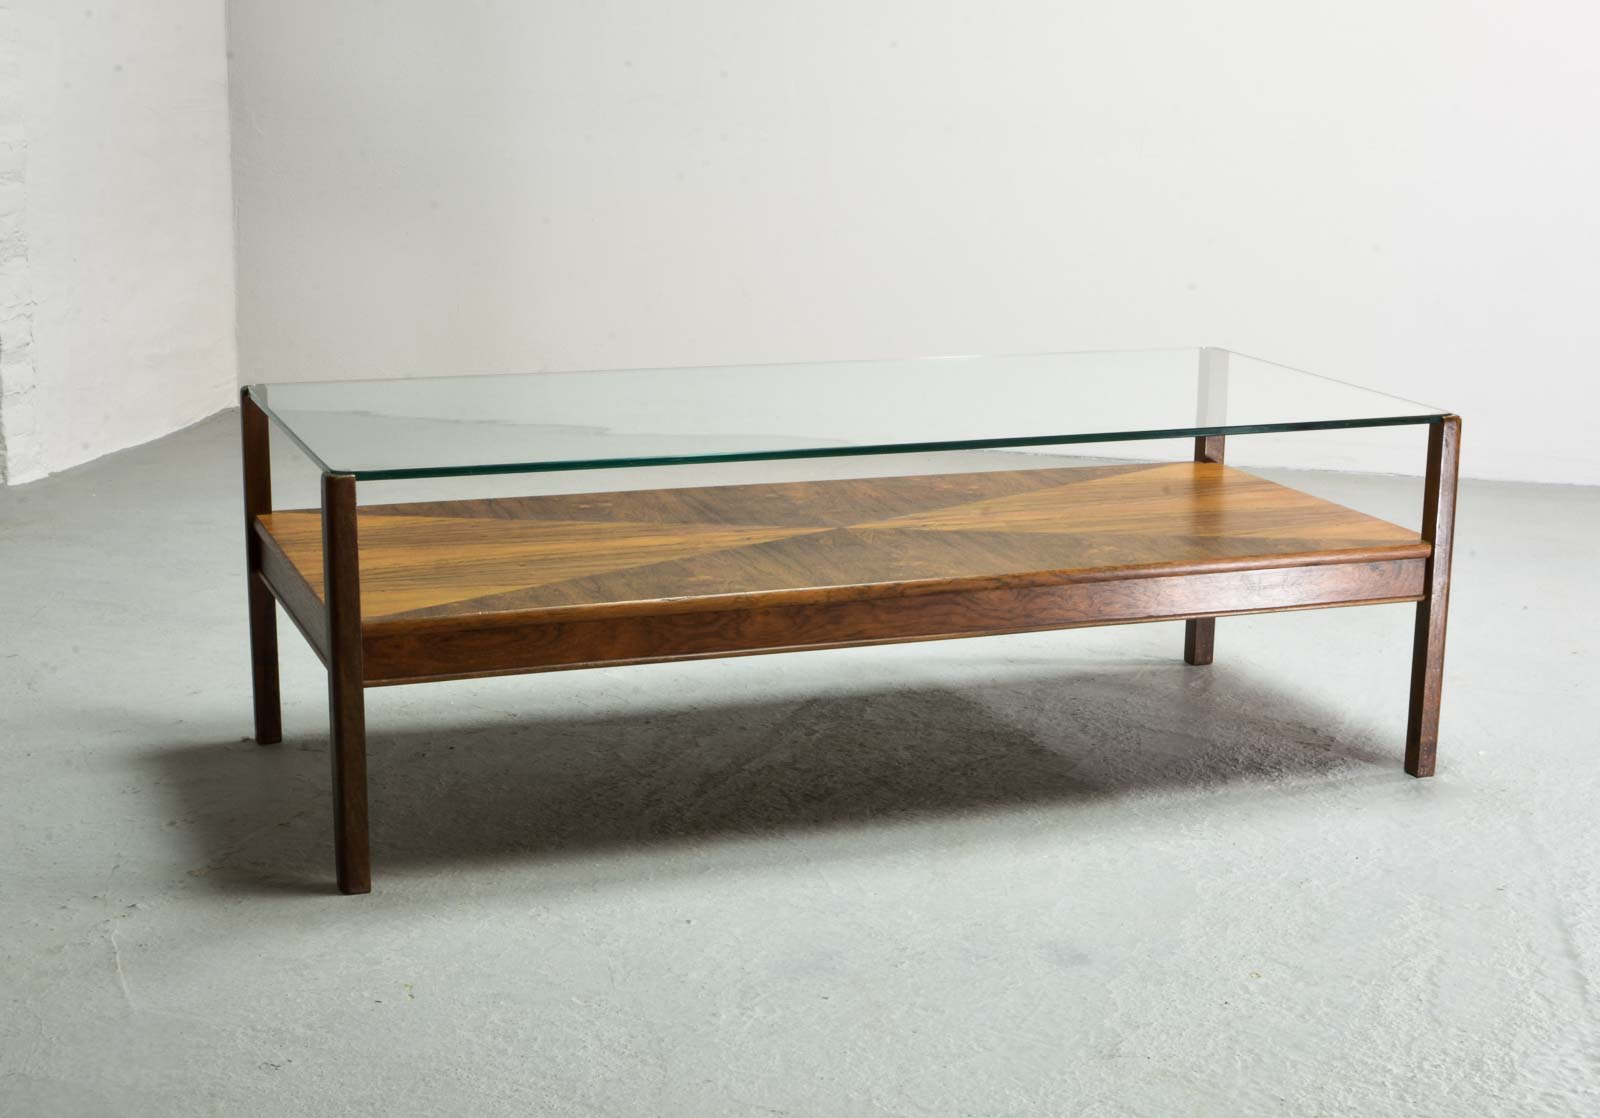 Stunning Dutch Design Rosewood Coffee Table With Glass Top For Fristho,  1960s